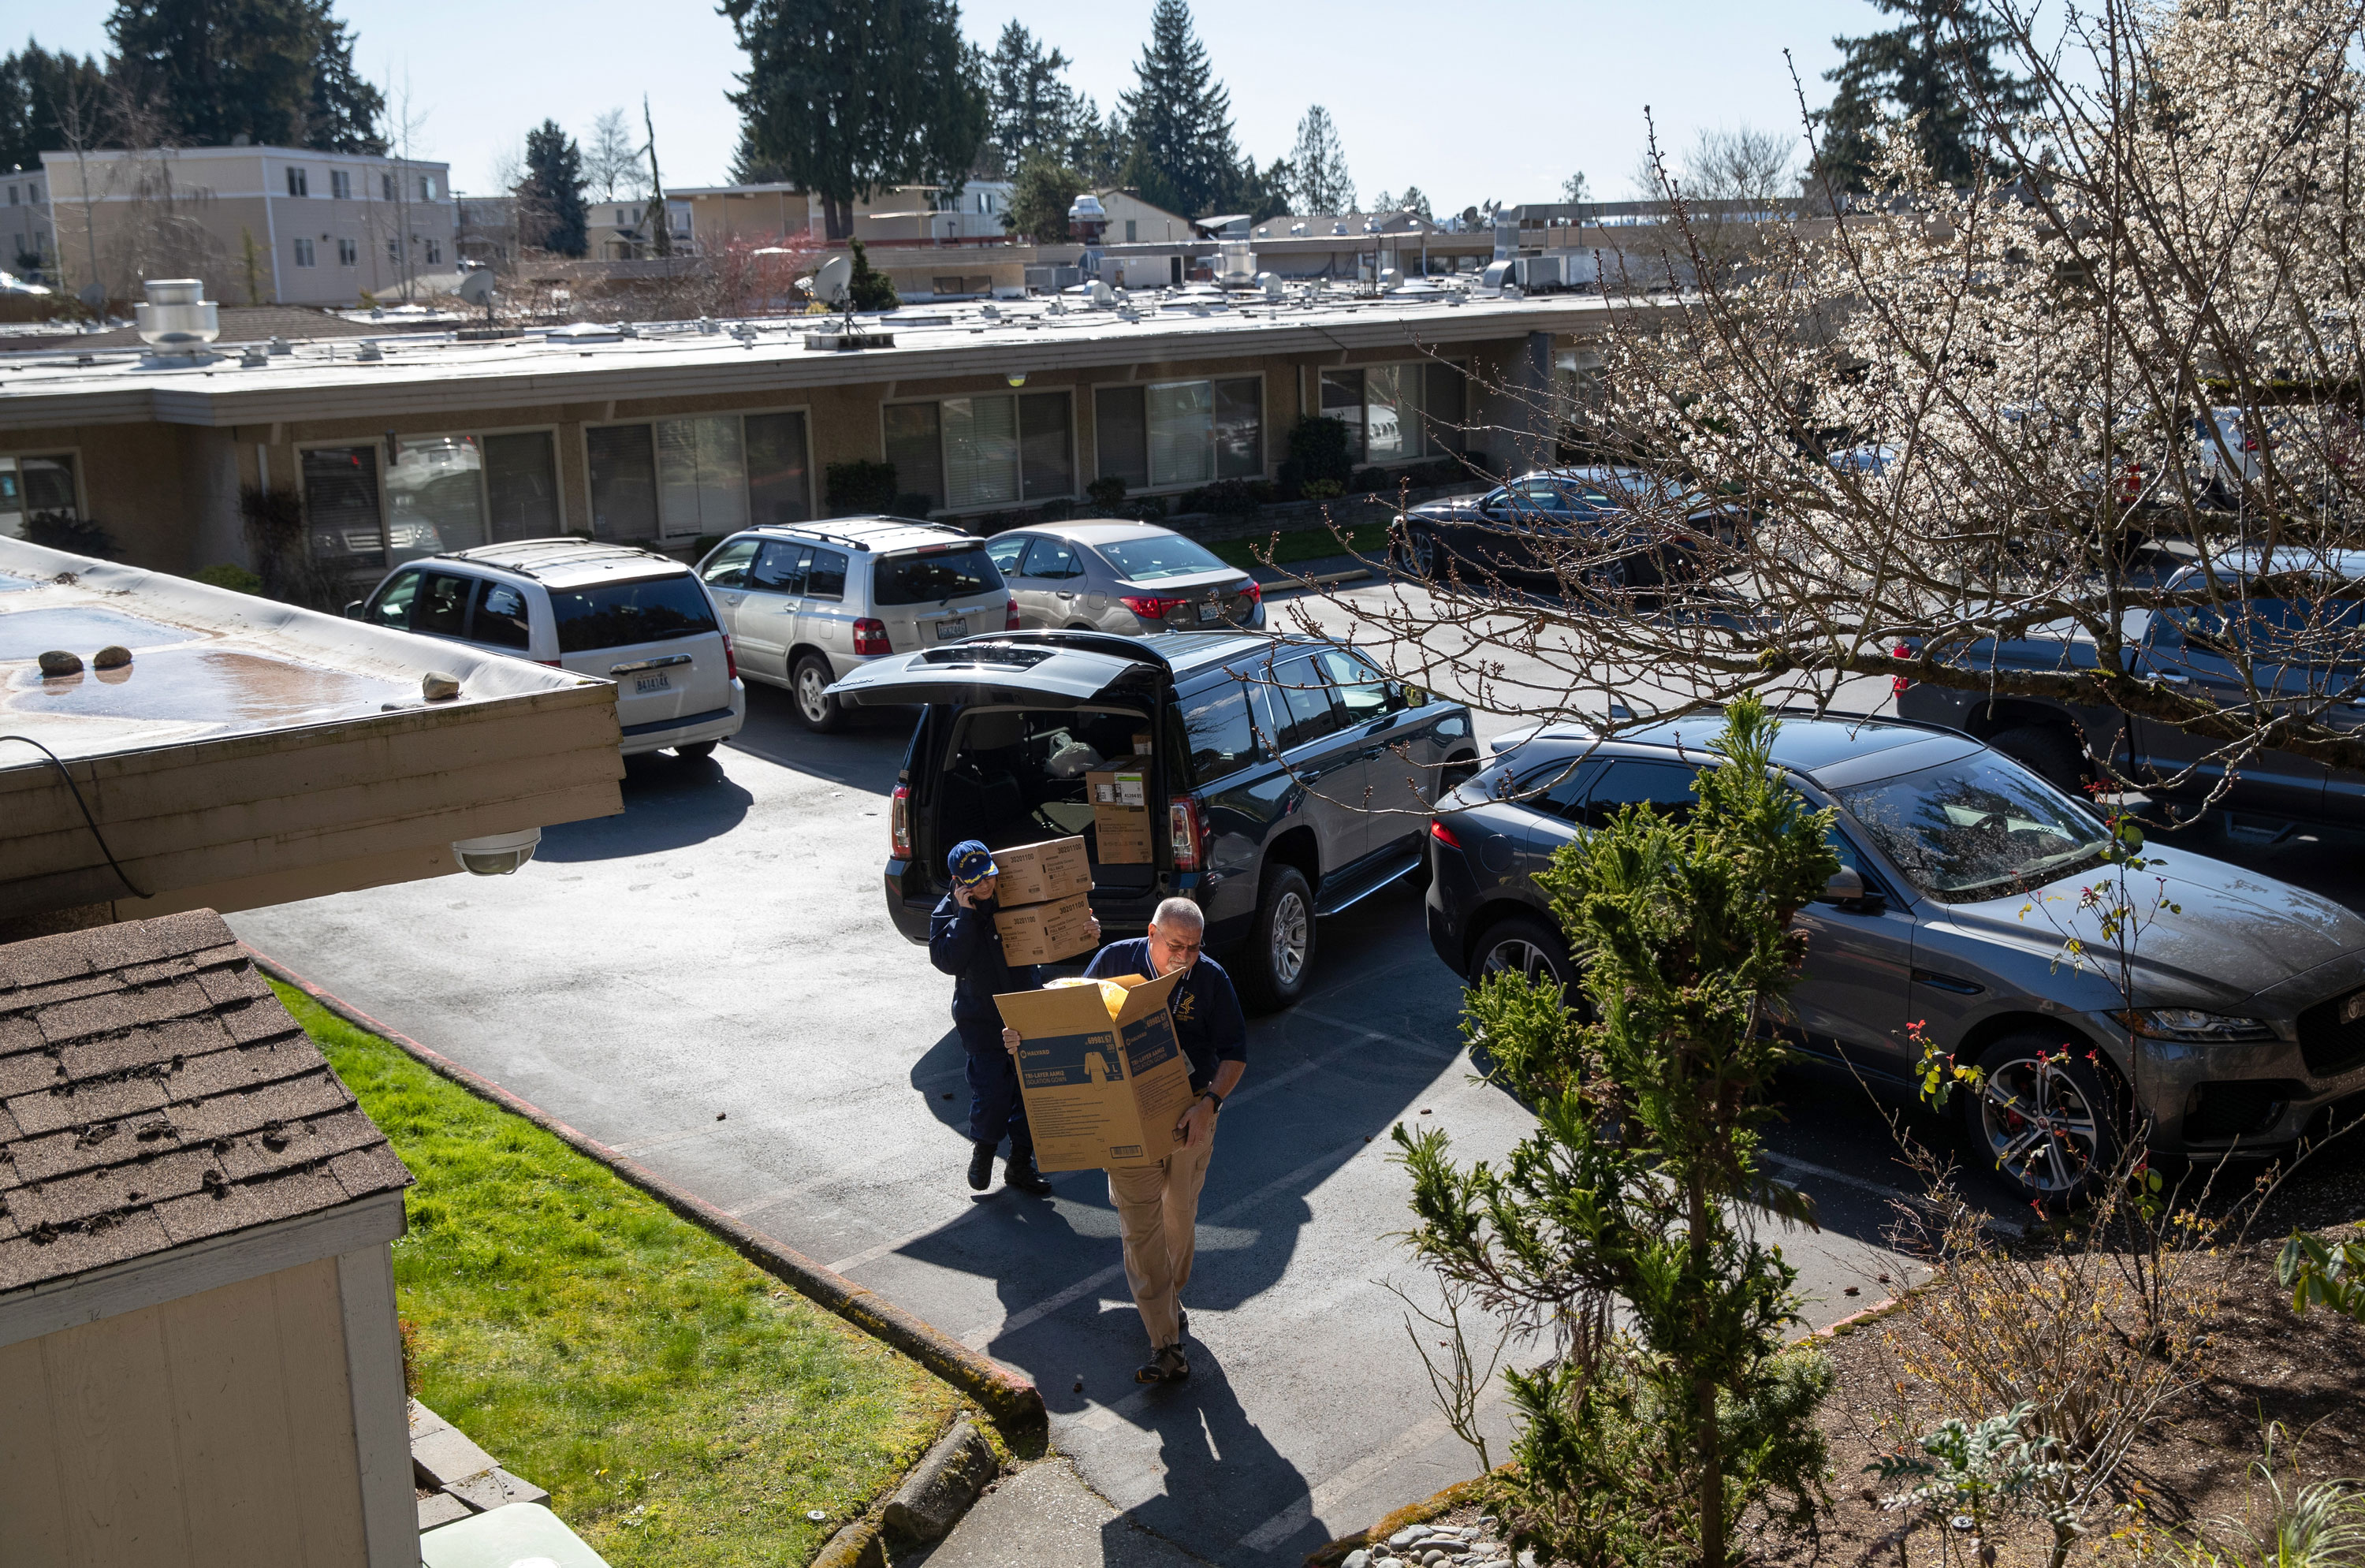 U.S. Federal health workers carry boxes into the Life Care Center nursing home on March 09, 2020 in Kirkland, Washington.